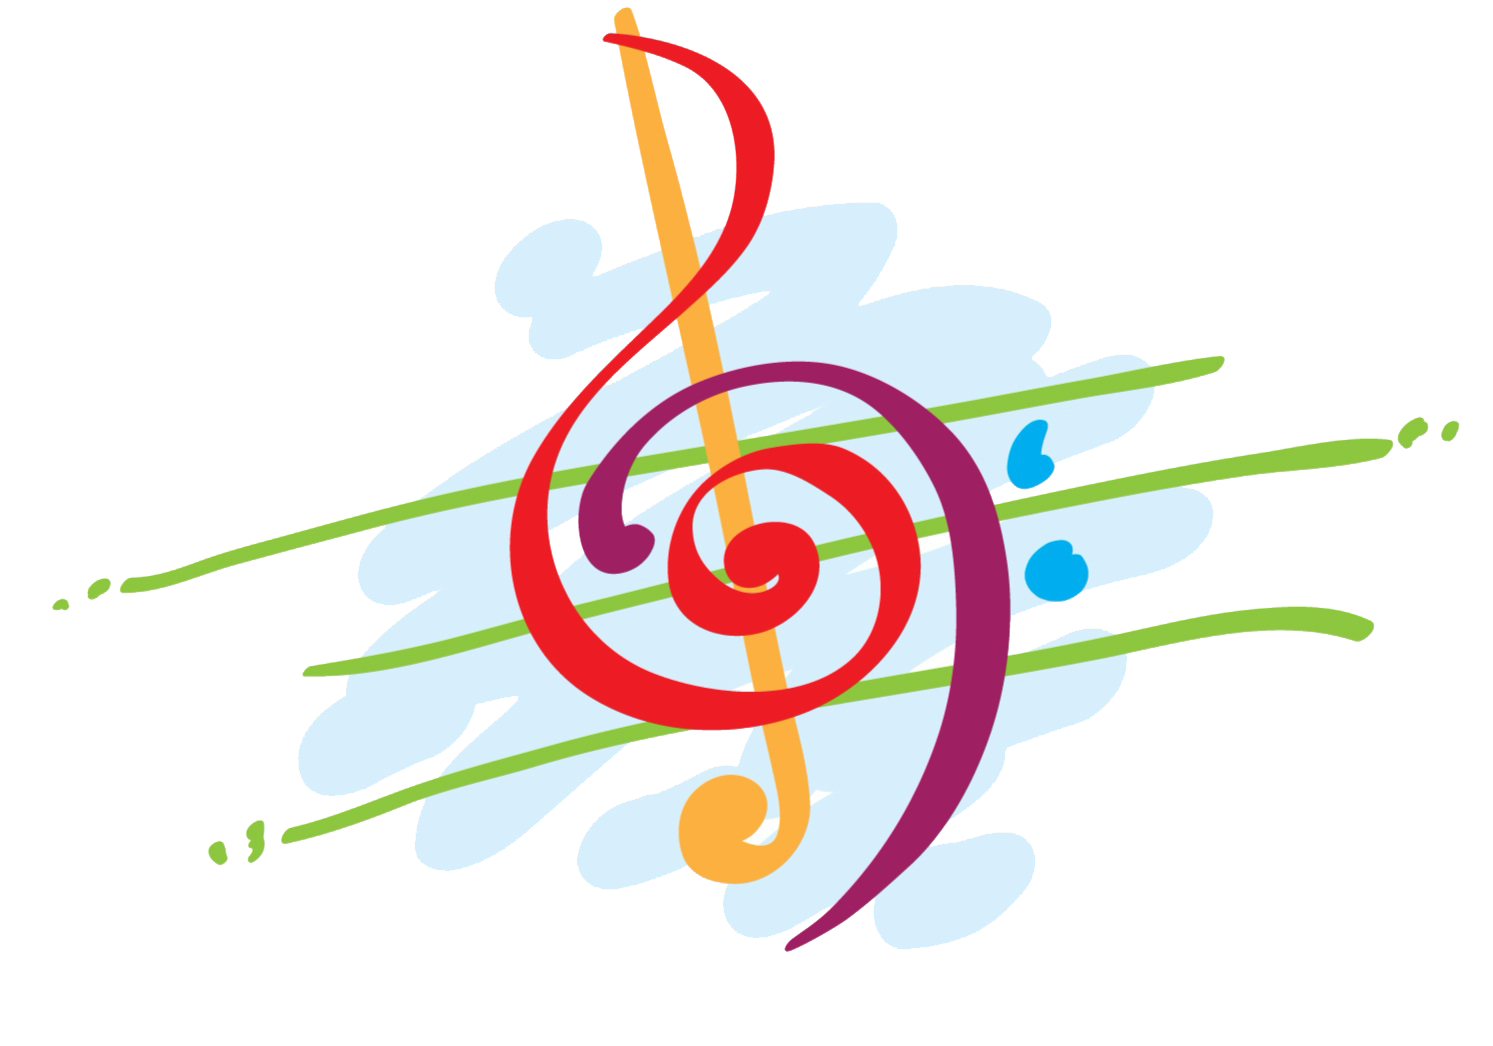 Musical clipart colorful. Image of music notes